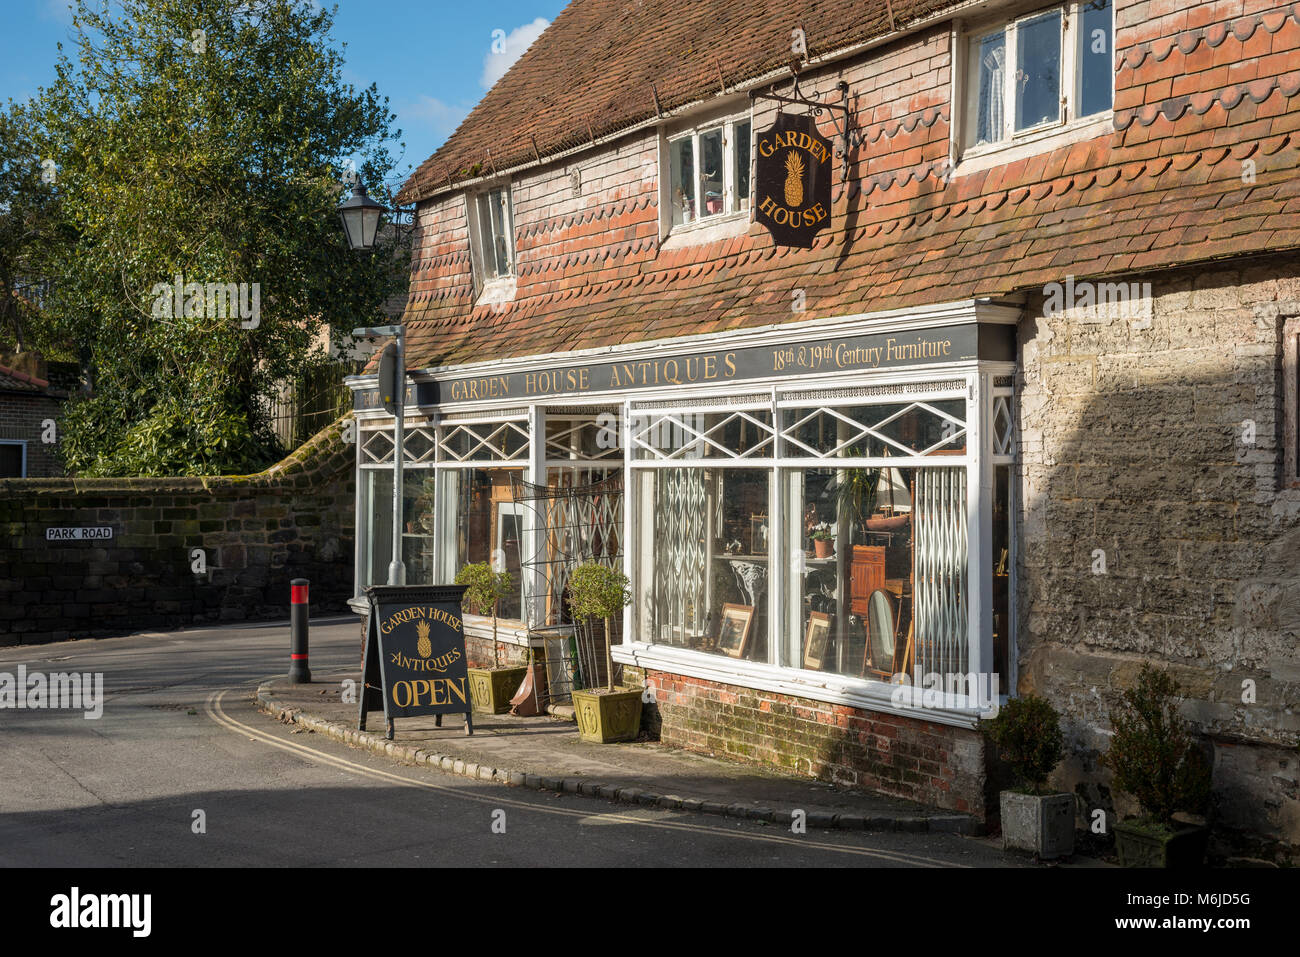 Petworth, West Sussex, England. The Garden House Antiques shop in the town. - Stock Image